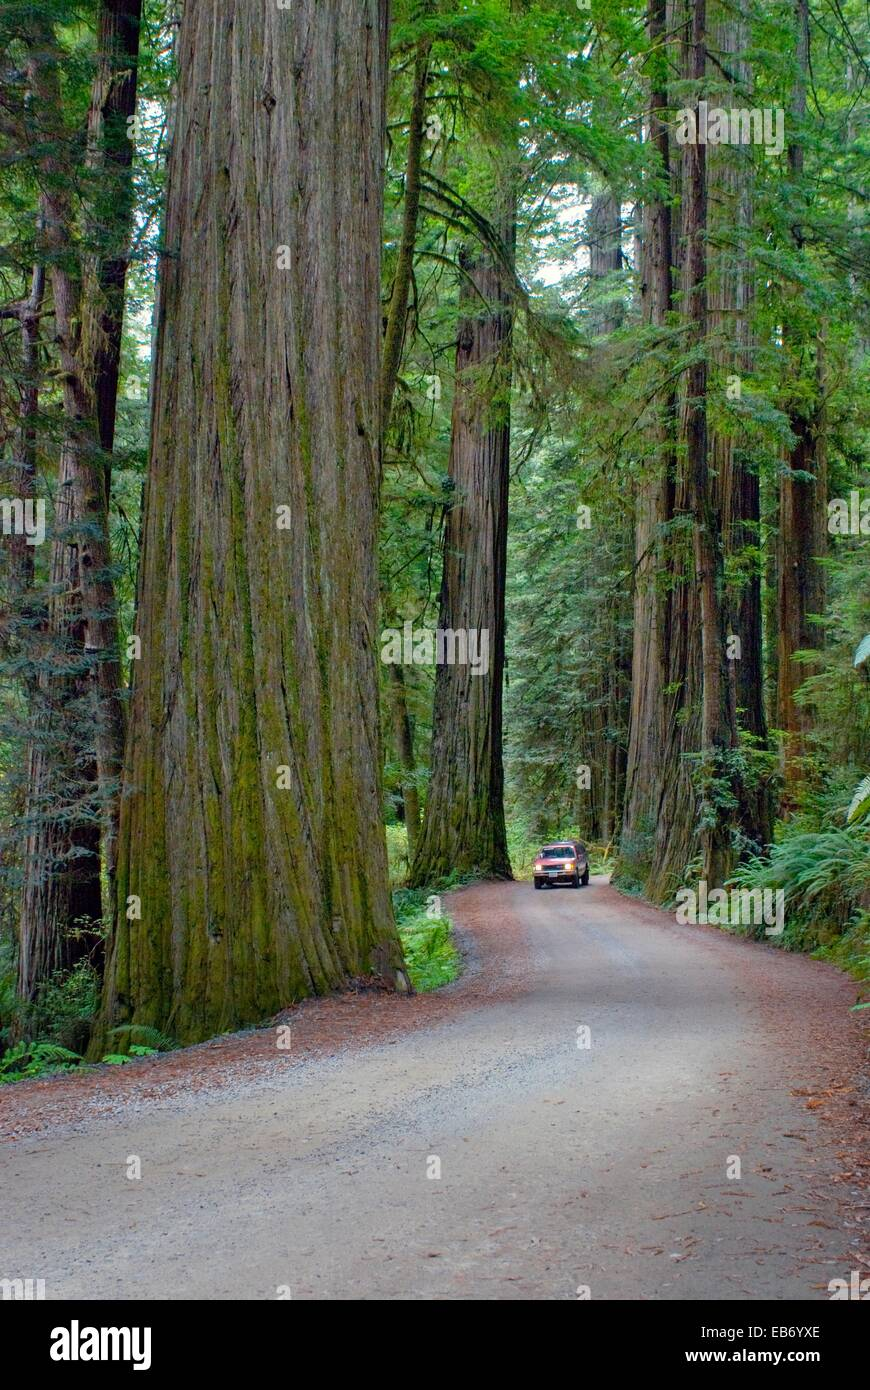 Primitive road through old growth coast redwood forest, Jedediah Smith Redwoods State Park, Crescent City, California - Stock Image